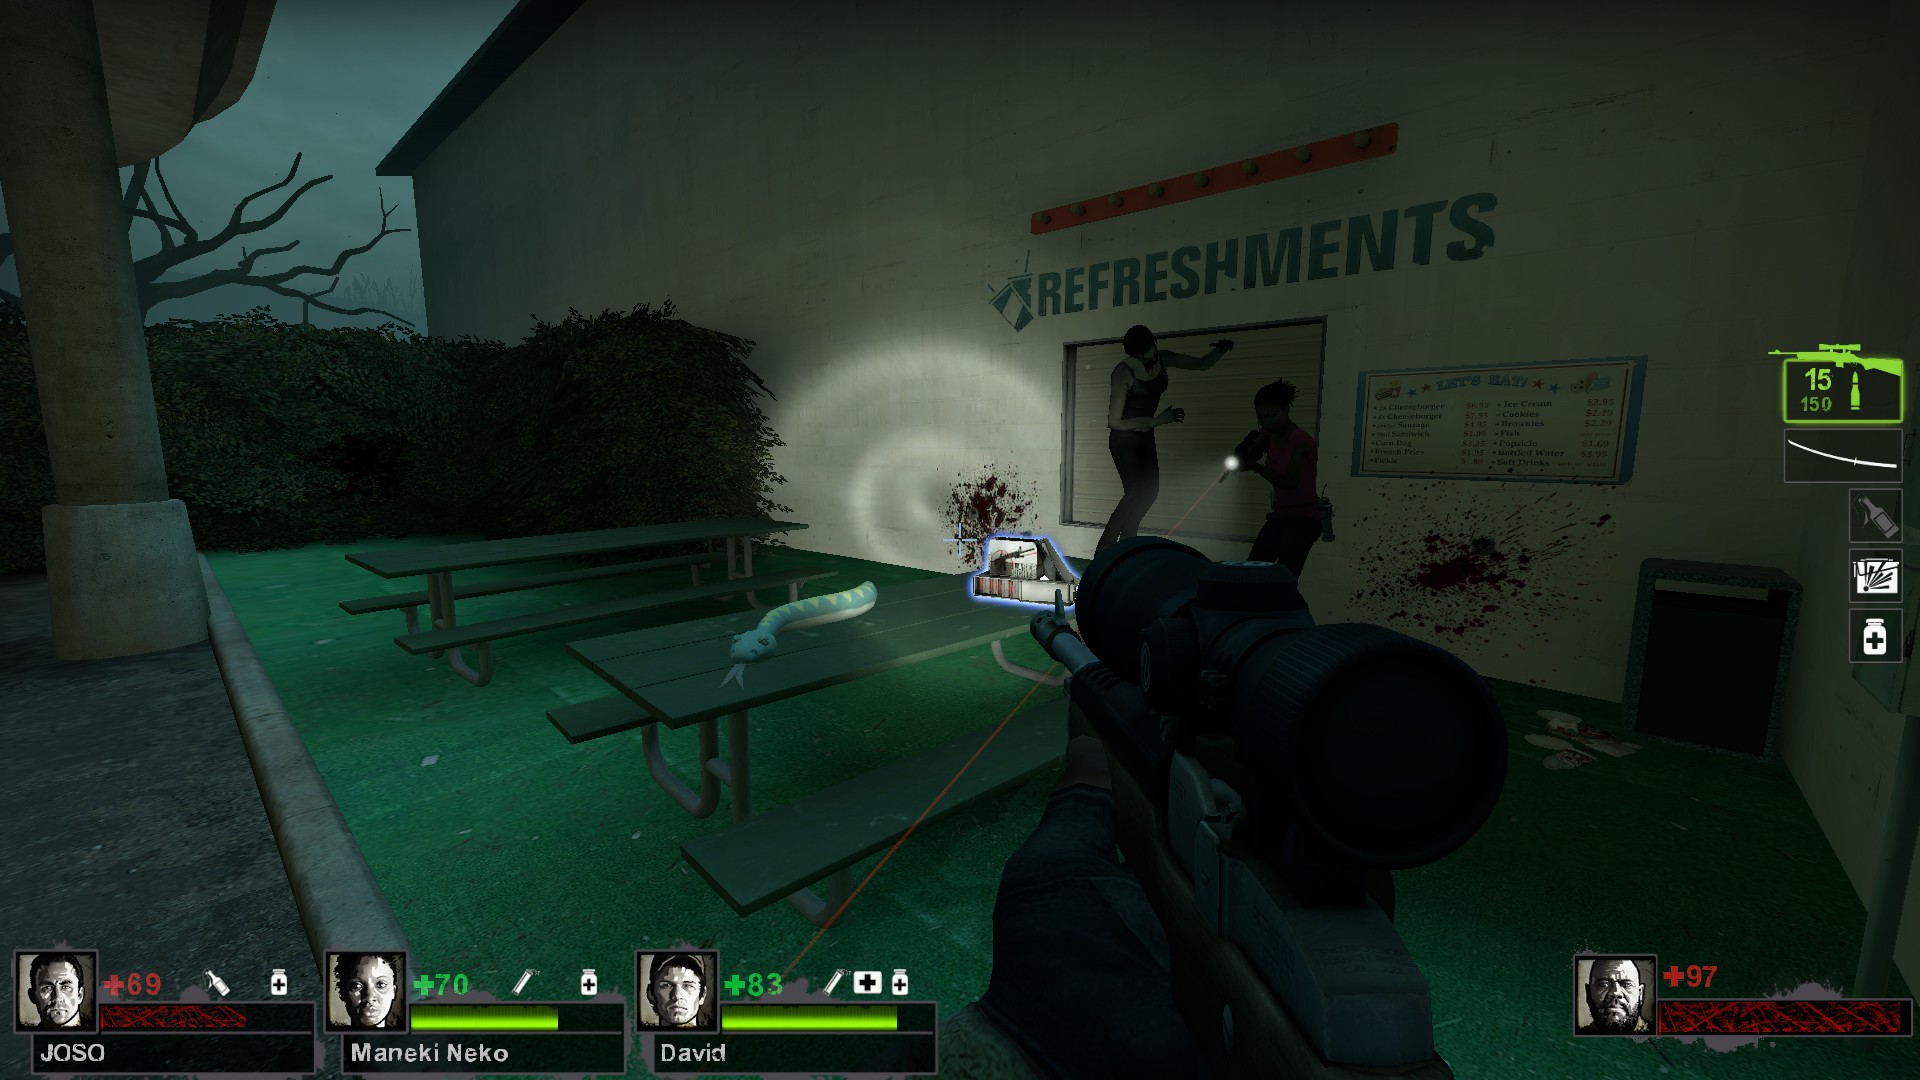 Left 4 Dead 2 - Detailed Guide for All Laser Sight Locations in Game - Map Guide - Potential spots, L4D2 maps - 4A36A81